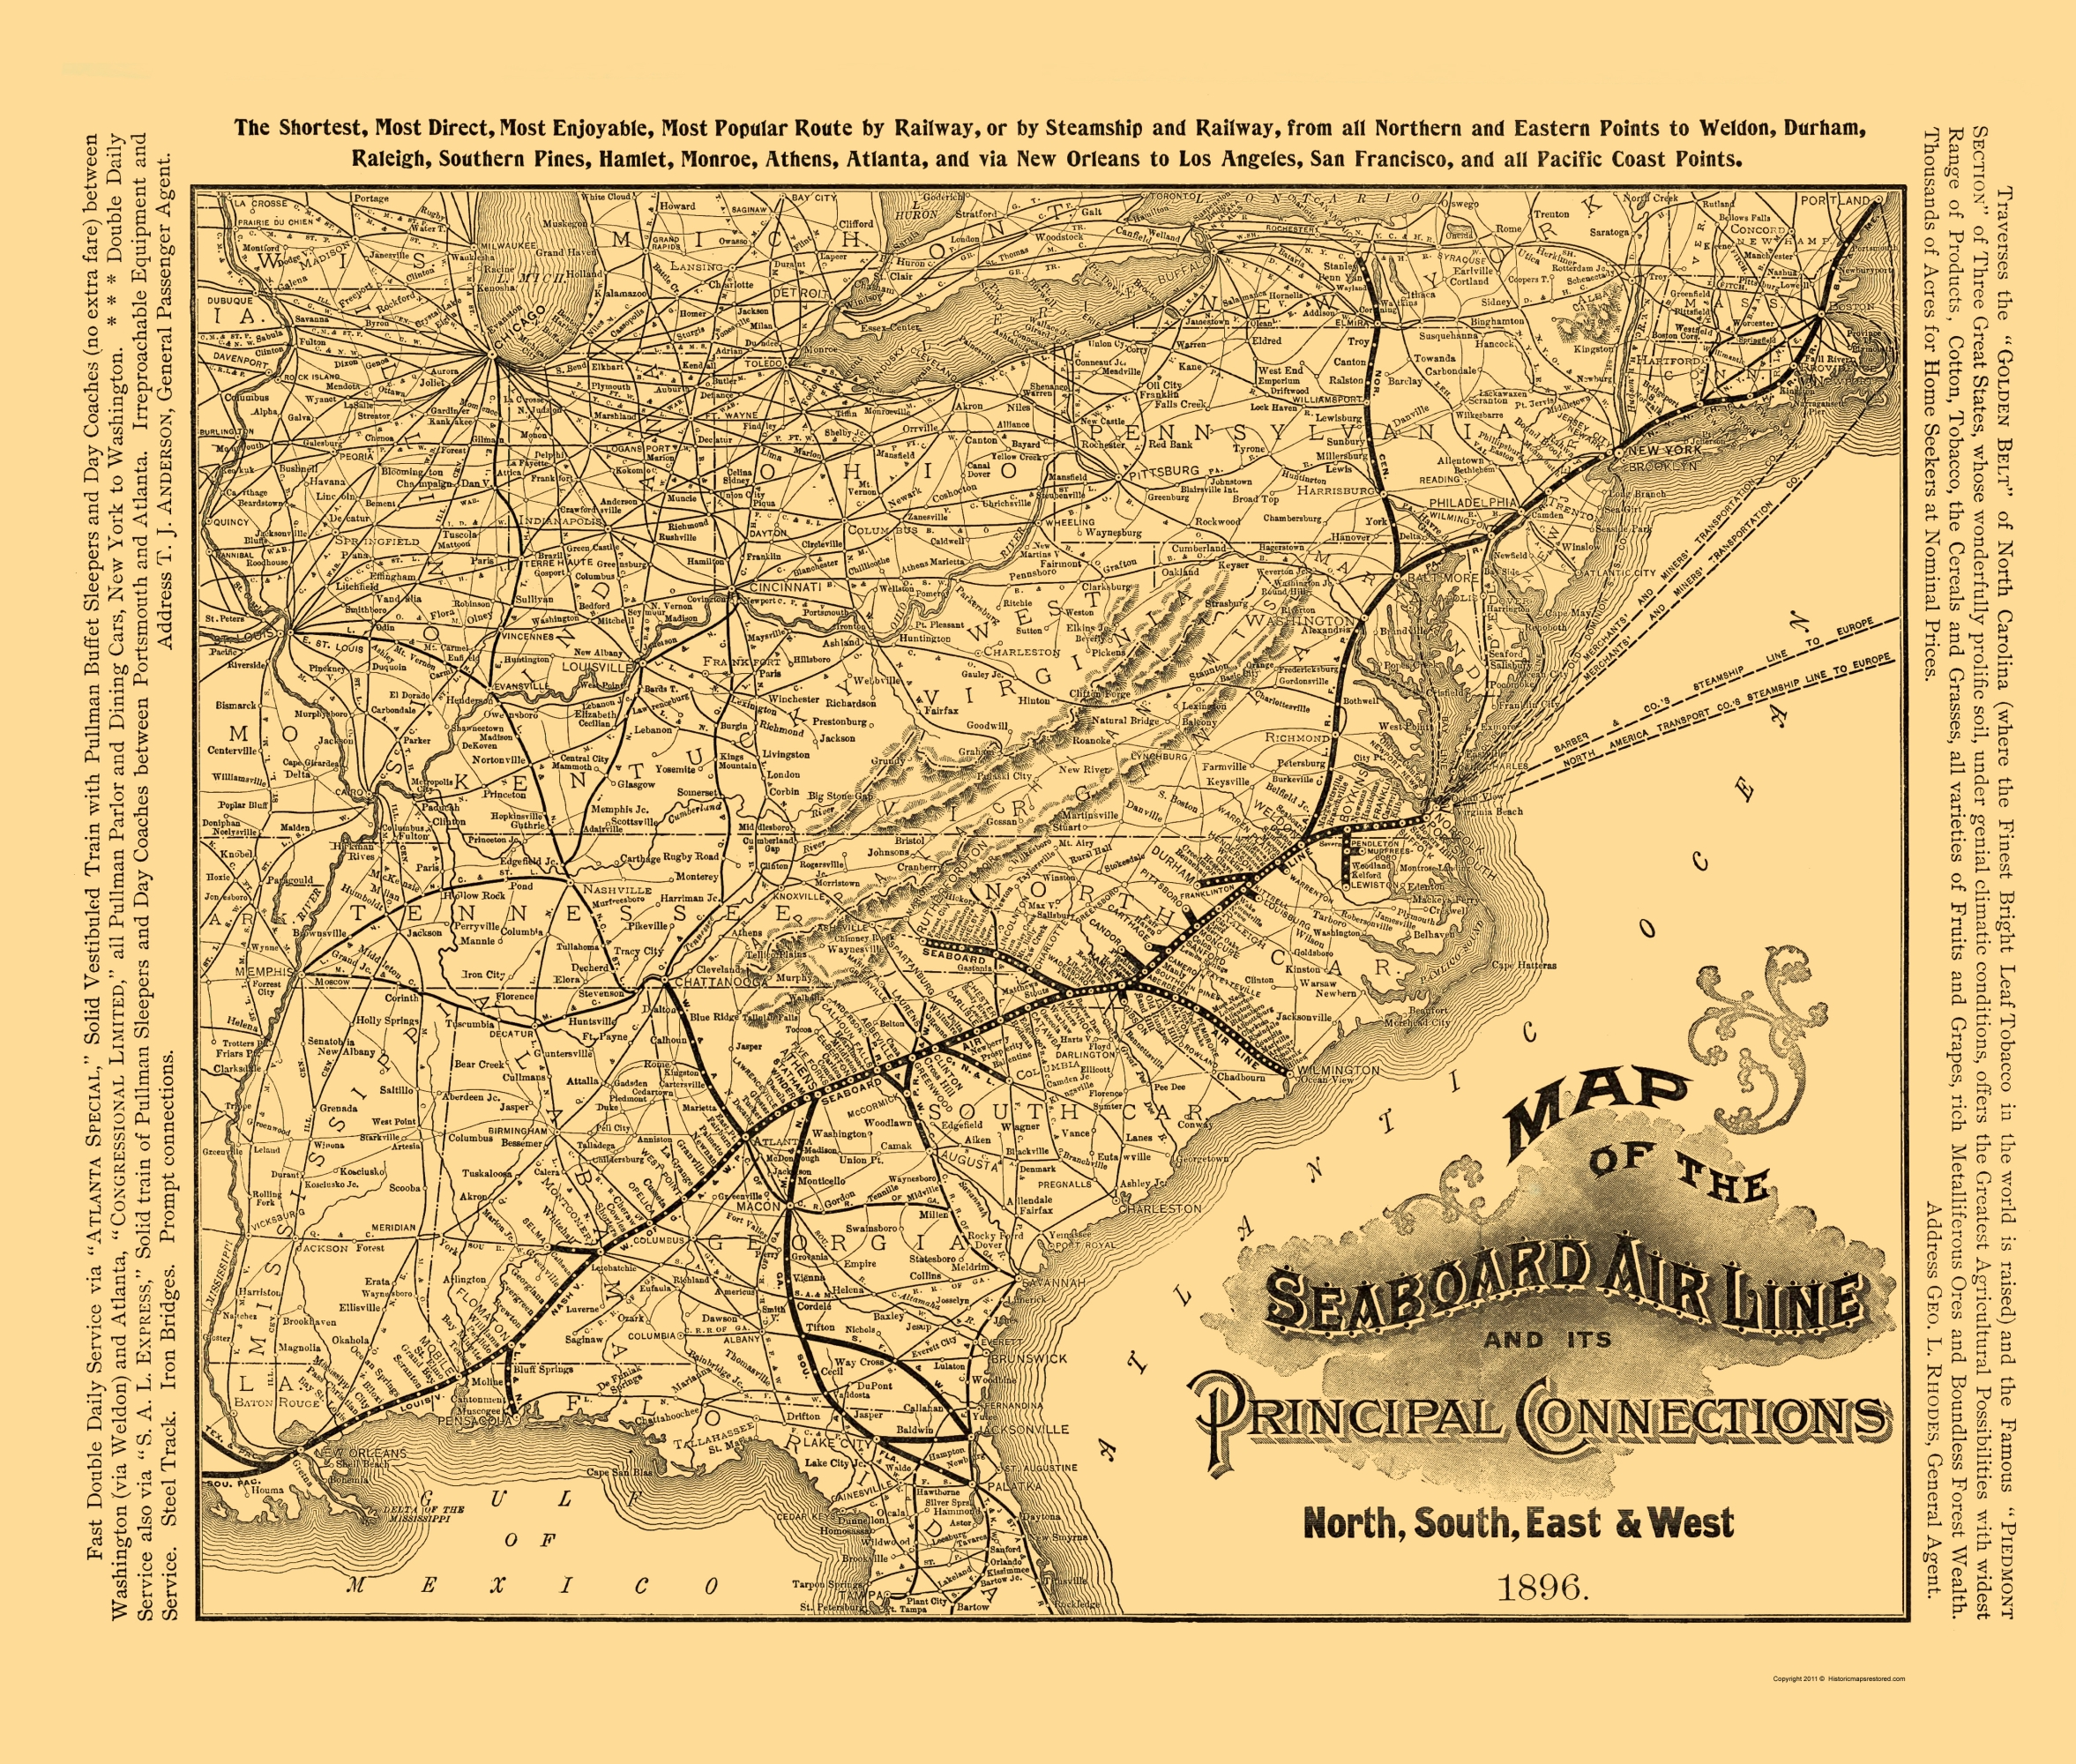 Old Railroad Map Seaboard Air Line Railroad - 1896 map of us